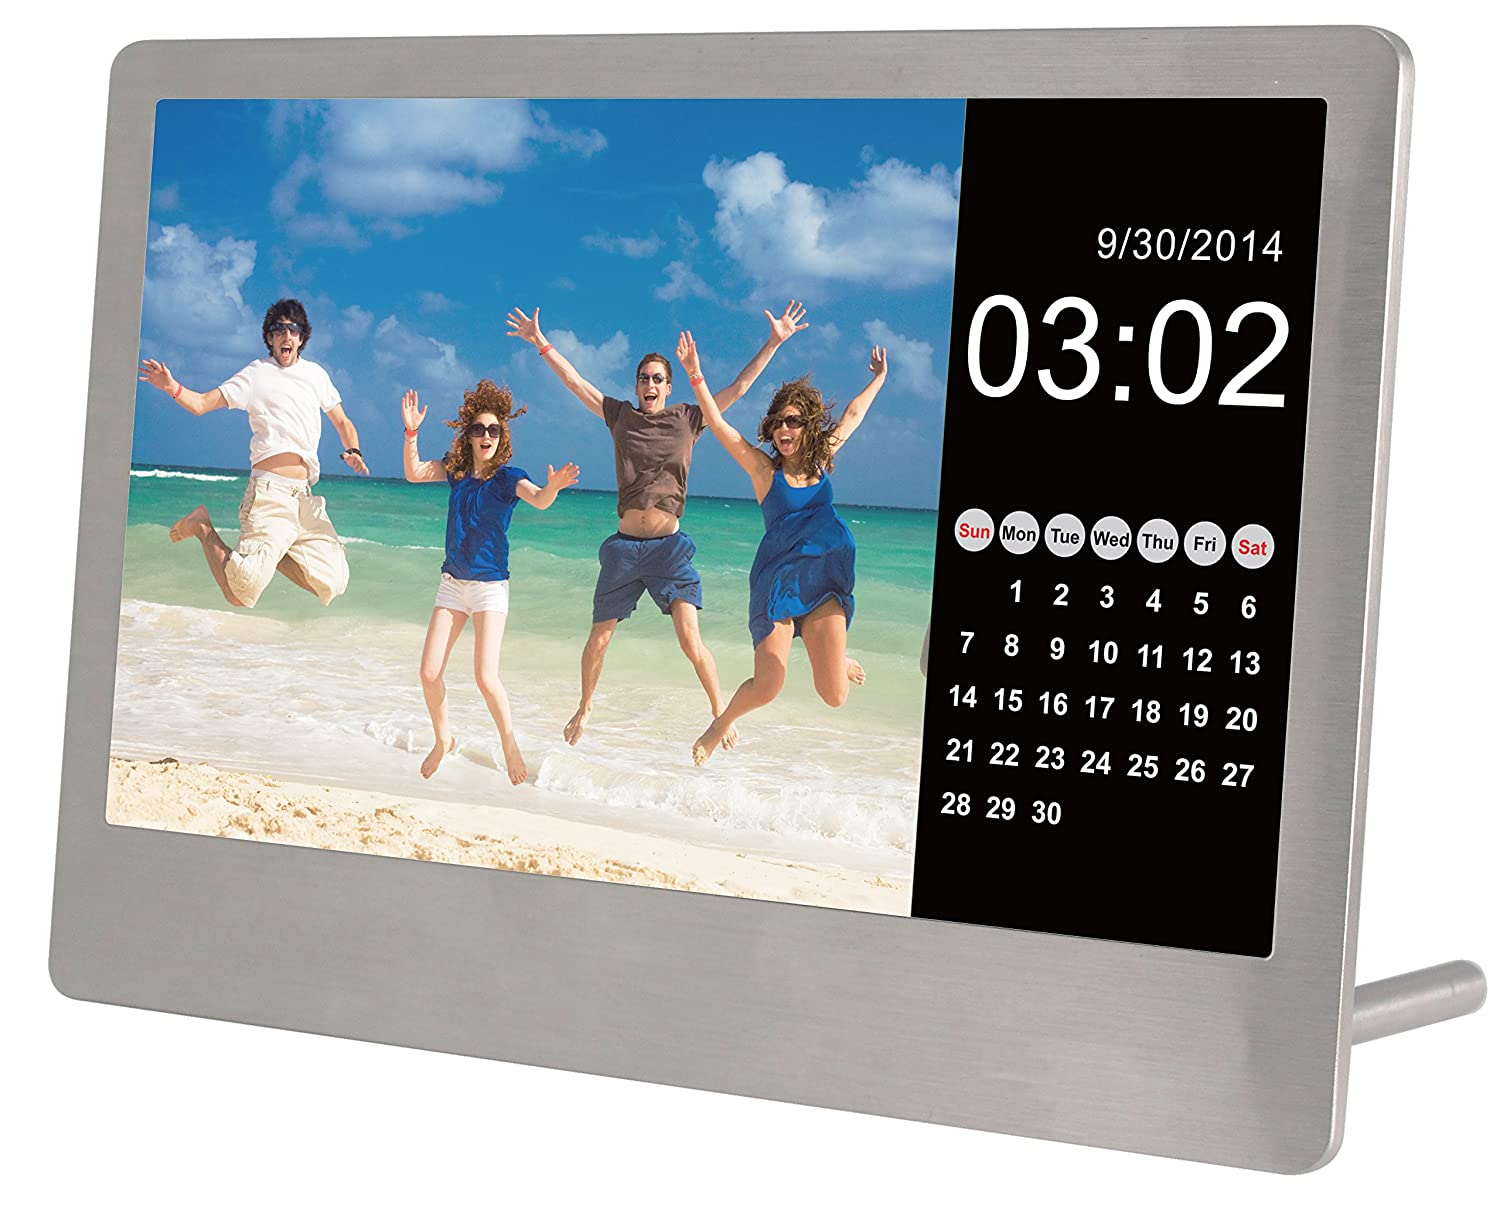 sylvania sdpf7977 7 inch stainless steel digital photo frame stainless steel